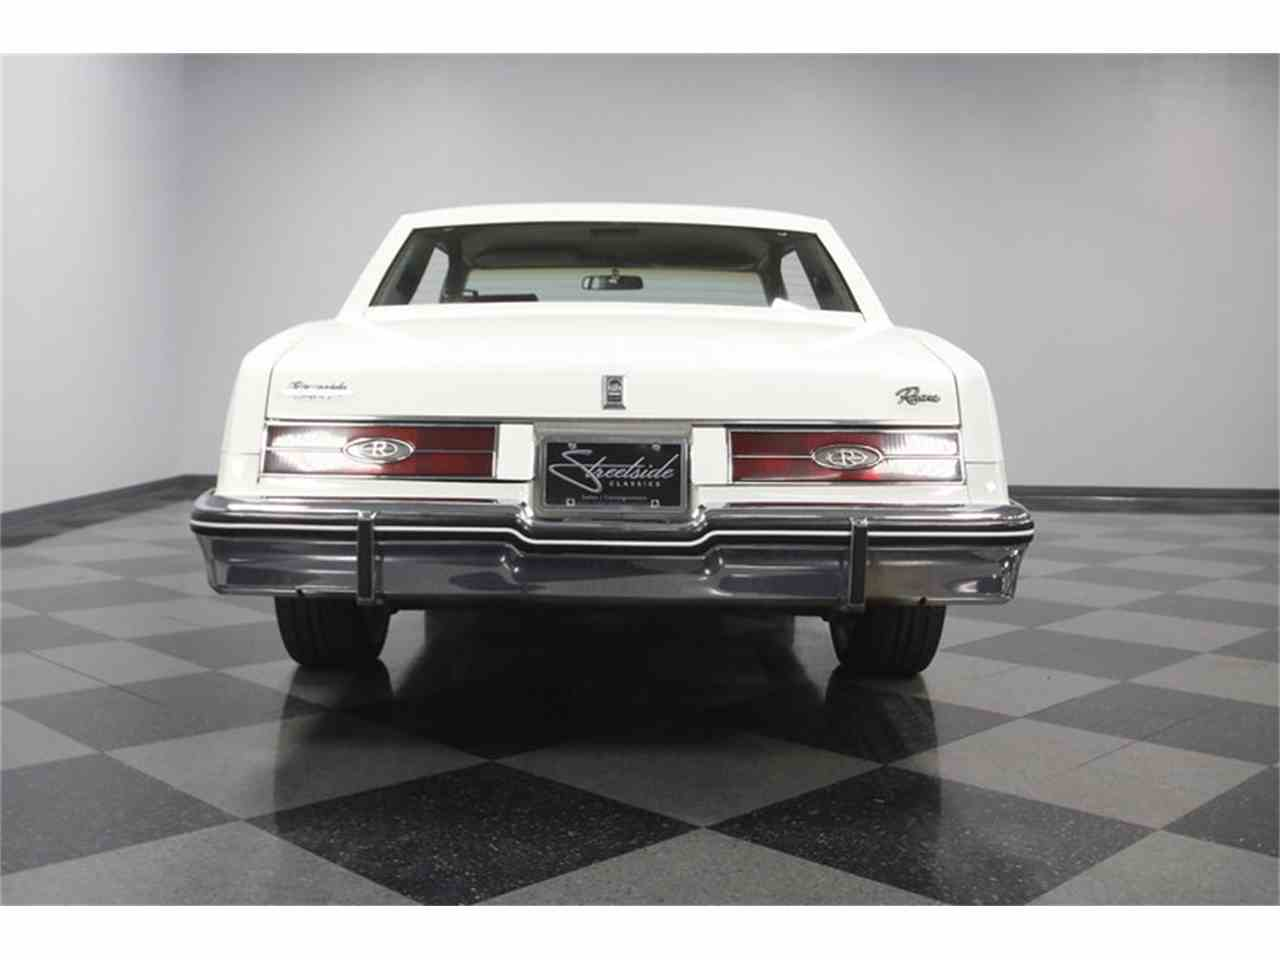 Large Picture of 1985 Buick Riviera located in North Carolina - $8,995.00 Offered by Streetside Classics - Charlotte - MEQO